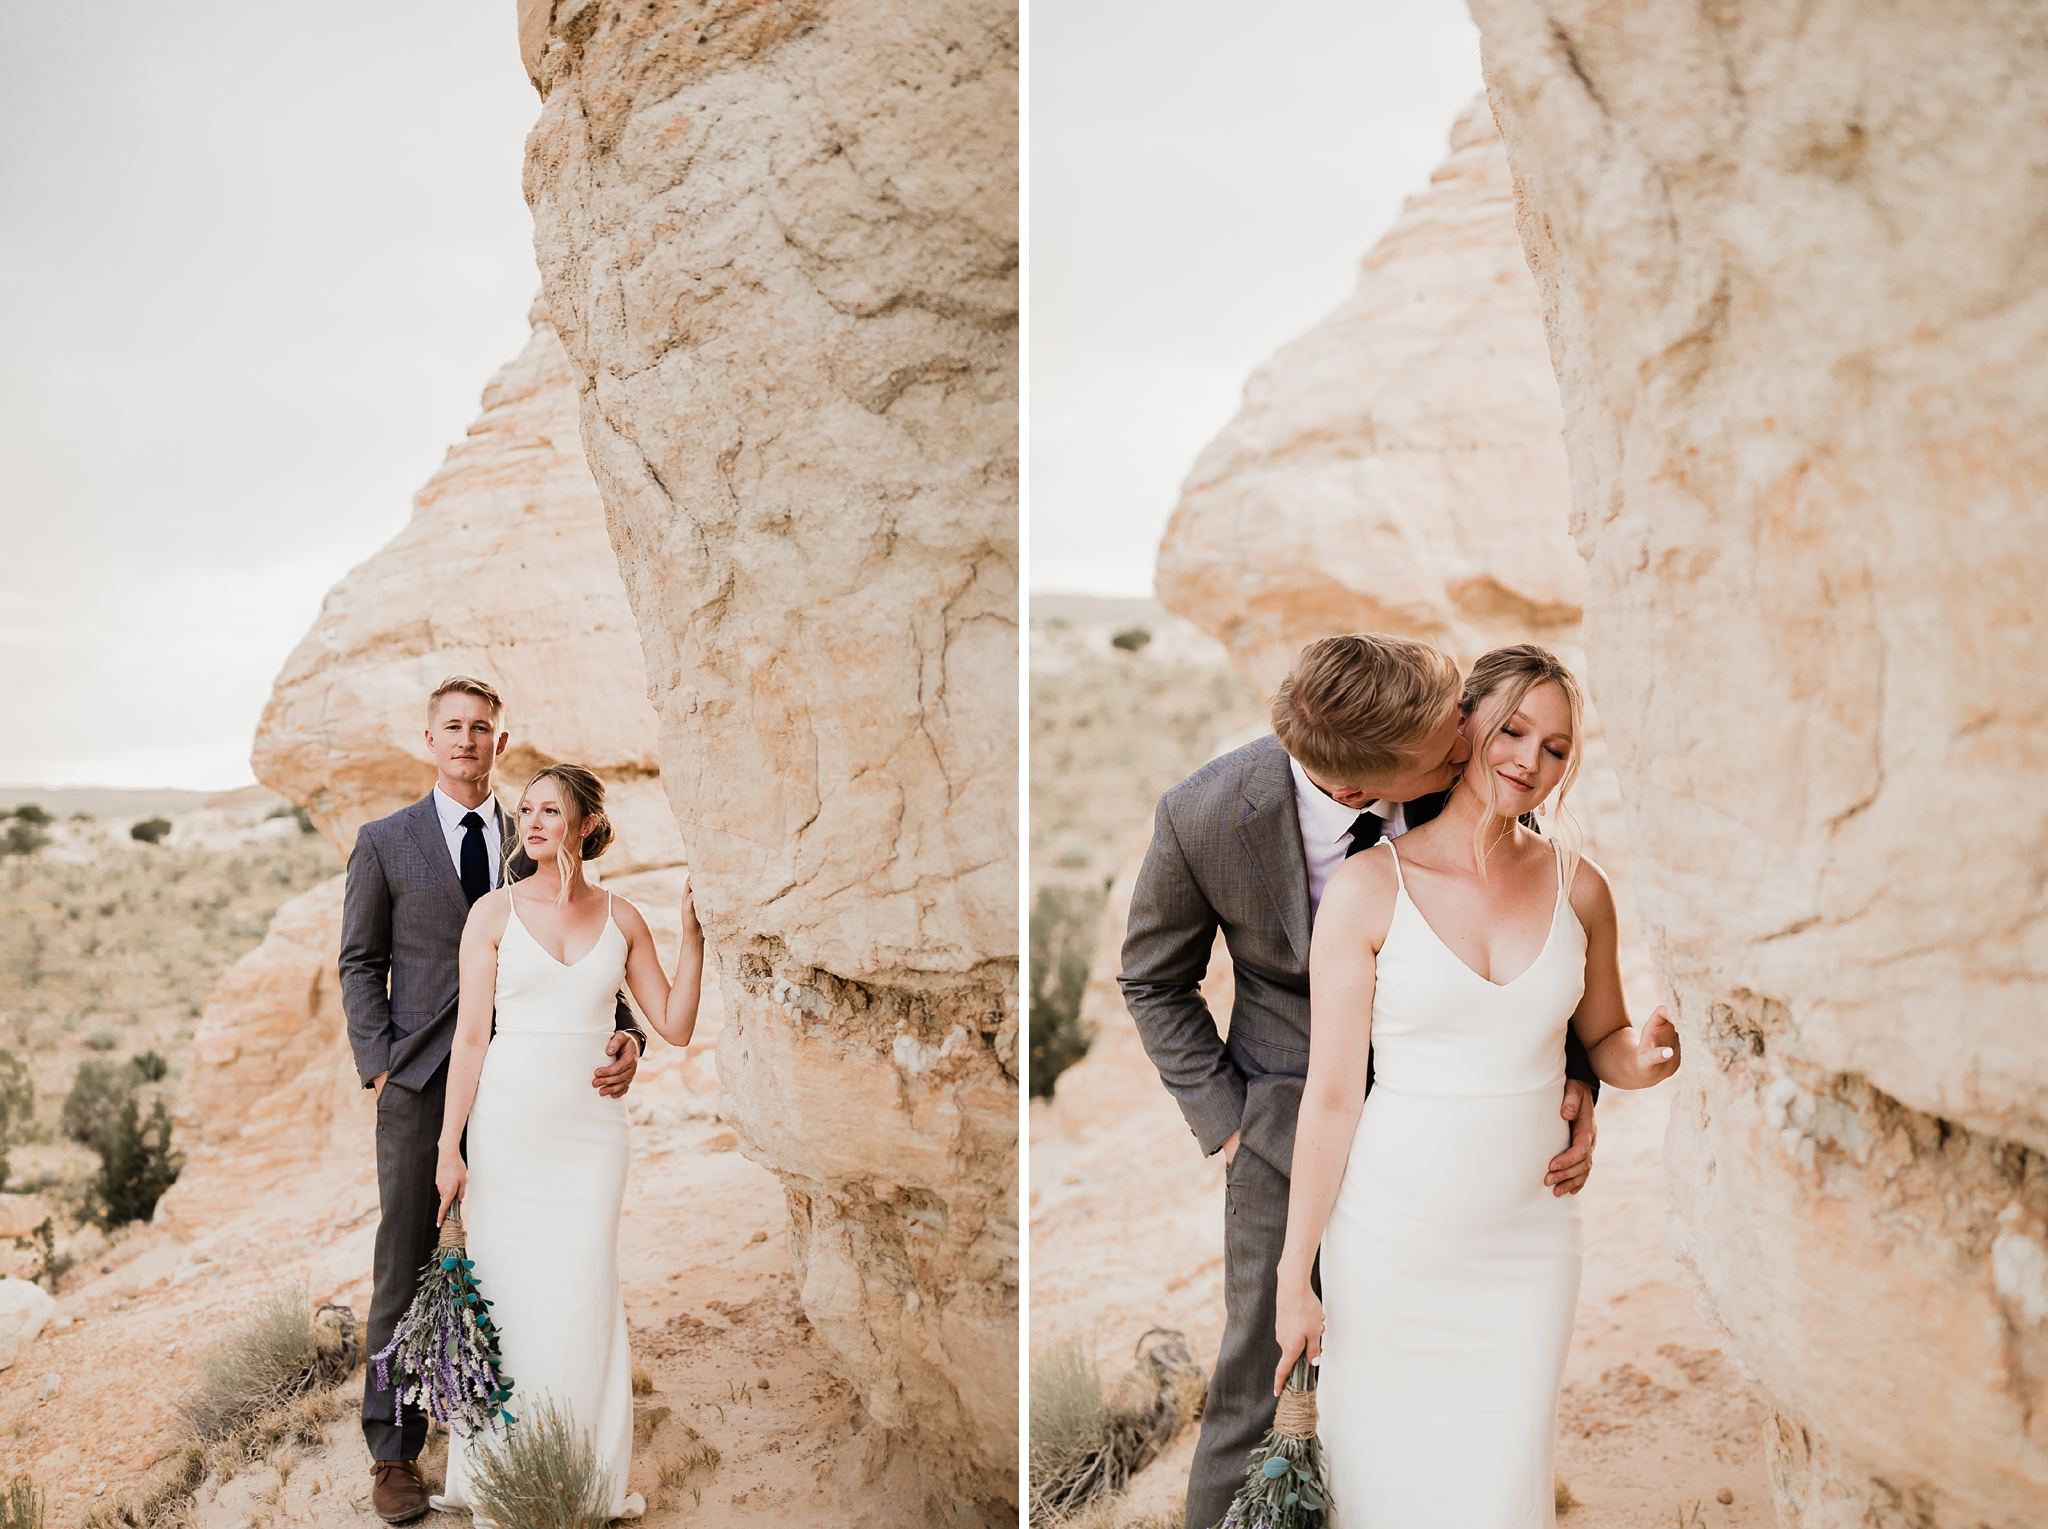 Alicia+lucia+photography+-+albuquerque+wedding+photographer+-+santa+fe+wedding+photography+-+new+mexico+wedding+photographer+-+new+mexico+wedding+-+new+mexico+elopement+-+elopment+-+mountain+elopement_0022.jpg